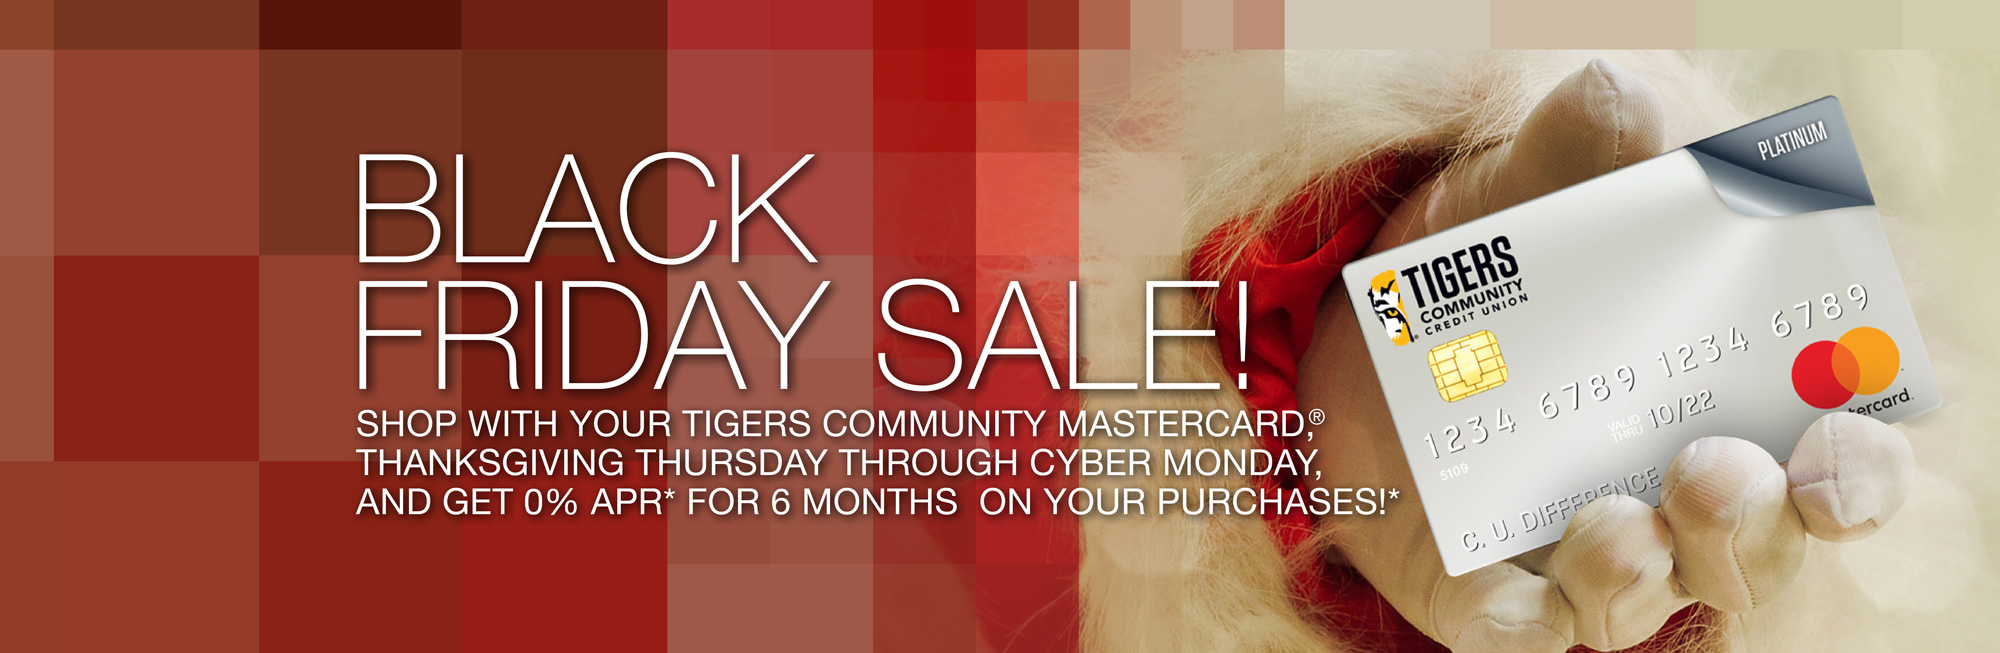 Shop with your Tigers Community Mastercard,® Thanksgiving Thursday, November 23 through  Cyber Monday, November 27, 2017, and get 0% APR* for 6 months on your purchases. Click to learn more.